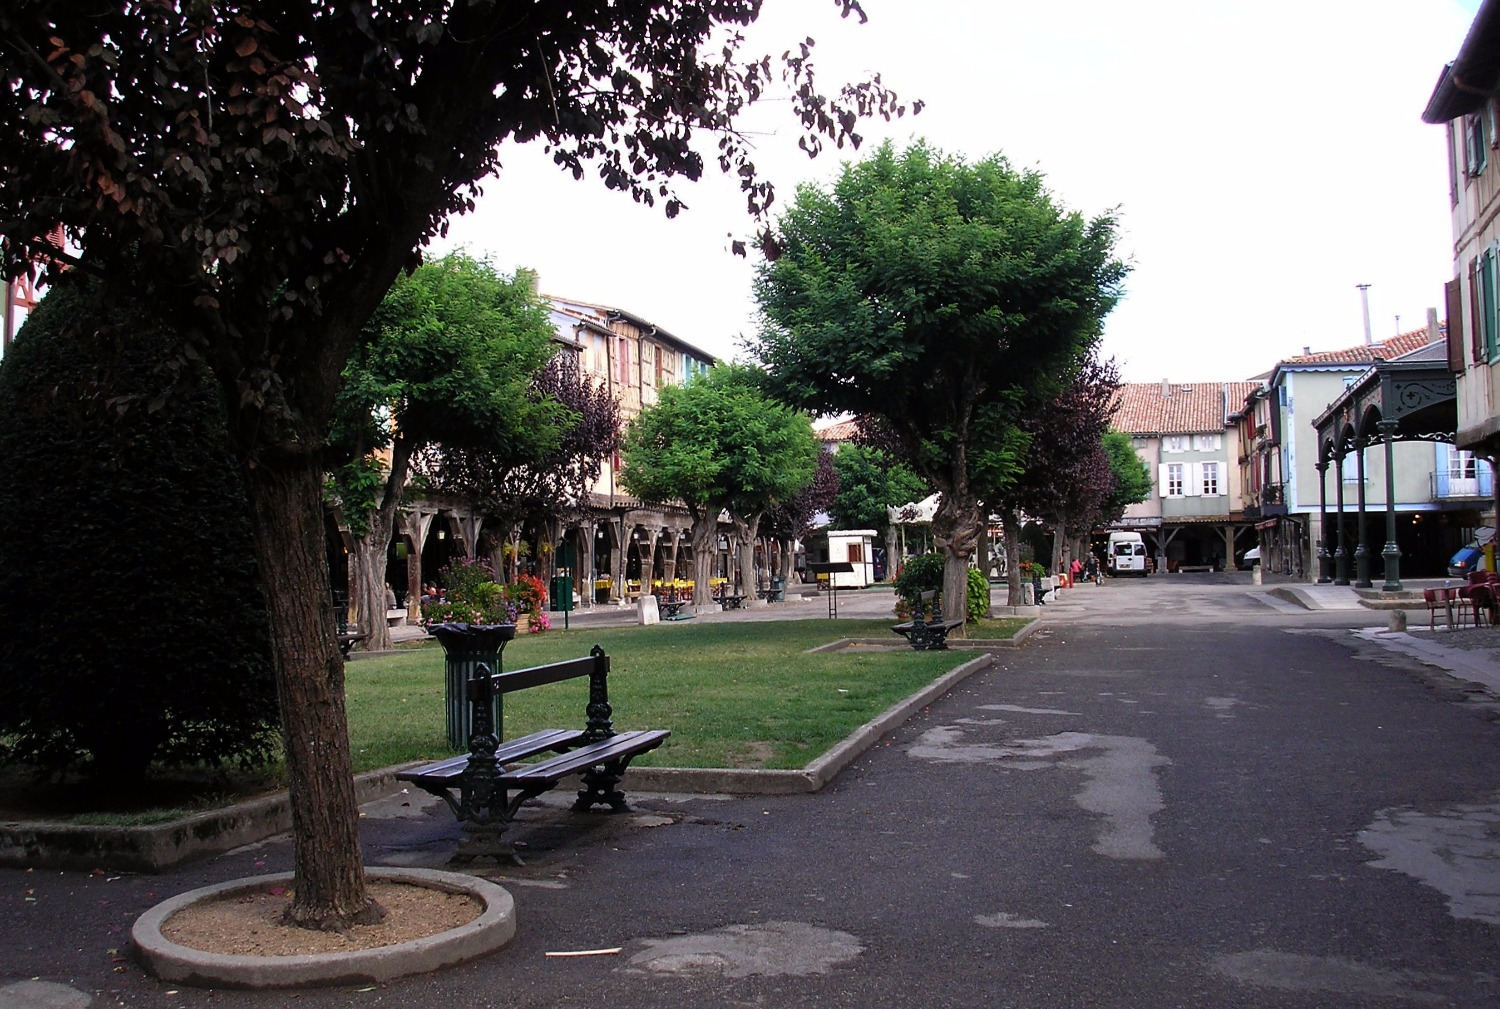 Mirepoix town square in summer